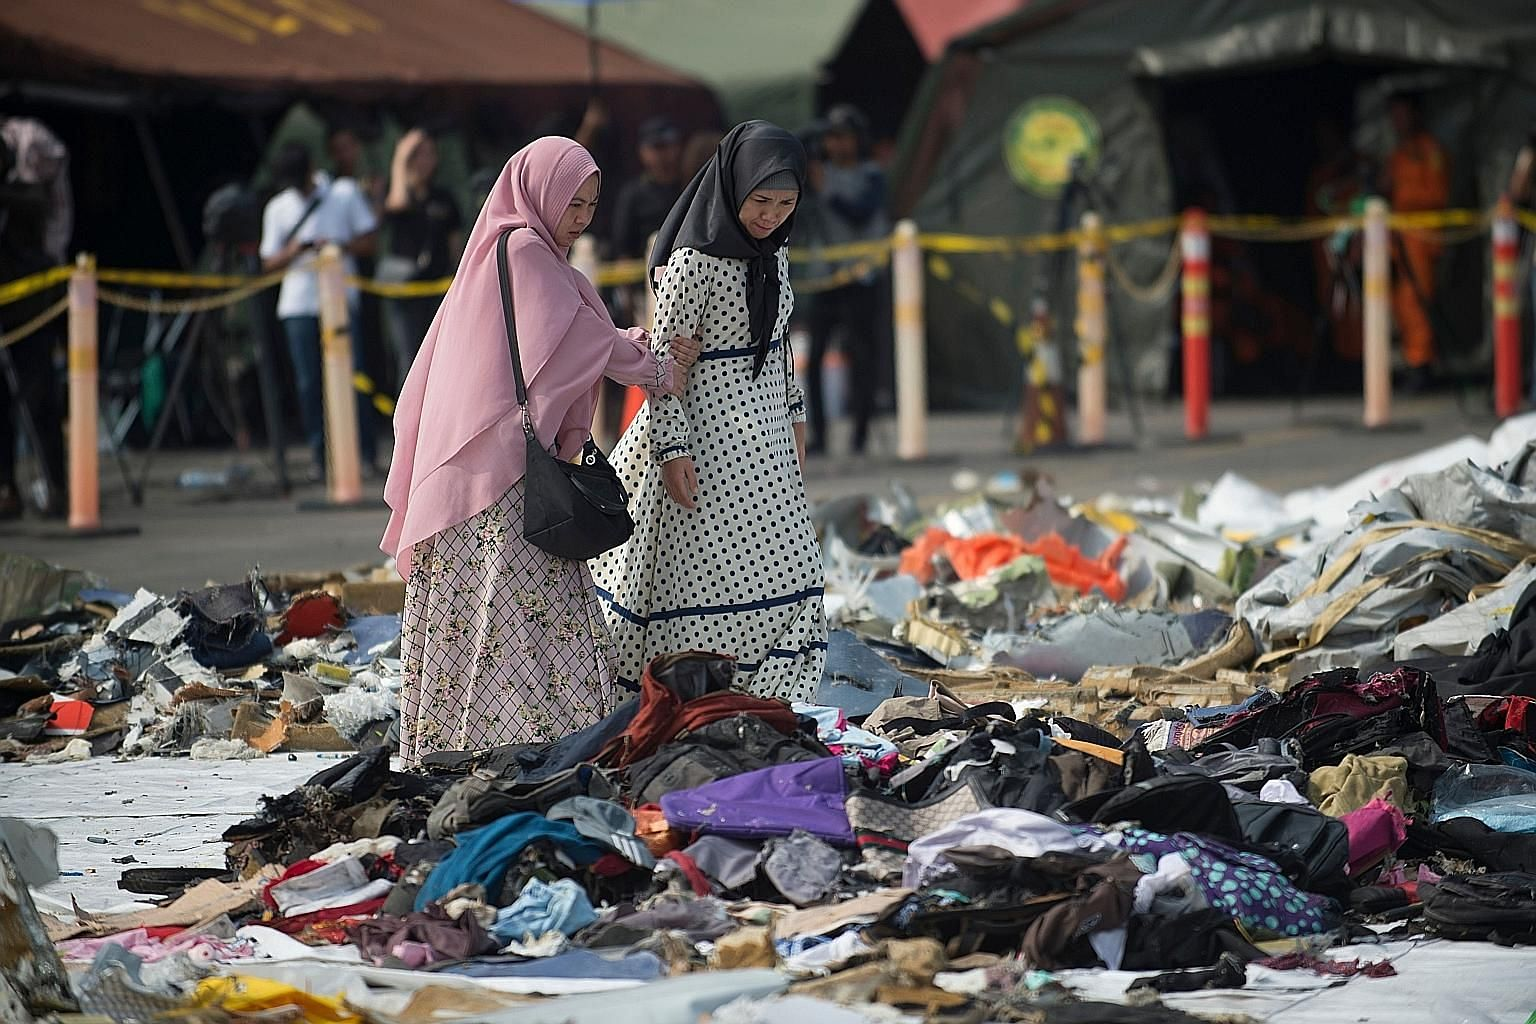 Relatives waiting for news of the forensic investigation at the Police Hospital in Jakarta yesterday. Search and rescue members in Tanjung Priok, with the remains of a body recovered from the crash on Monday. Relatives in Jakarta yesterday trying to